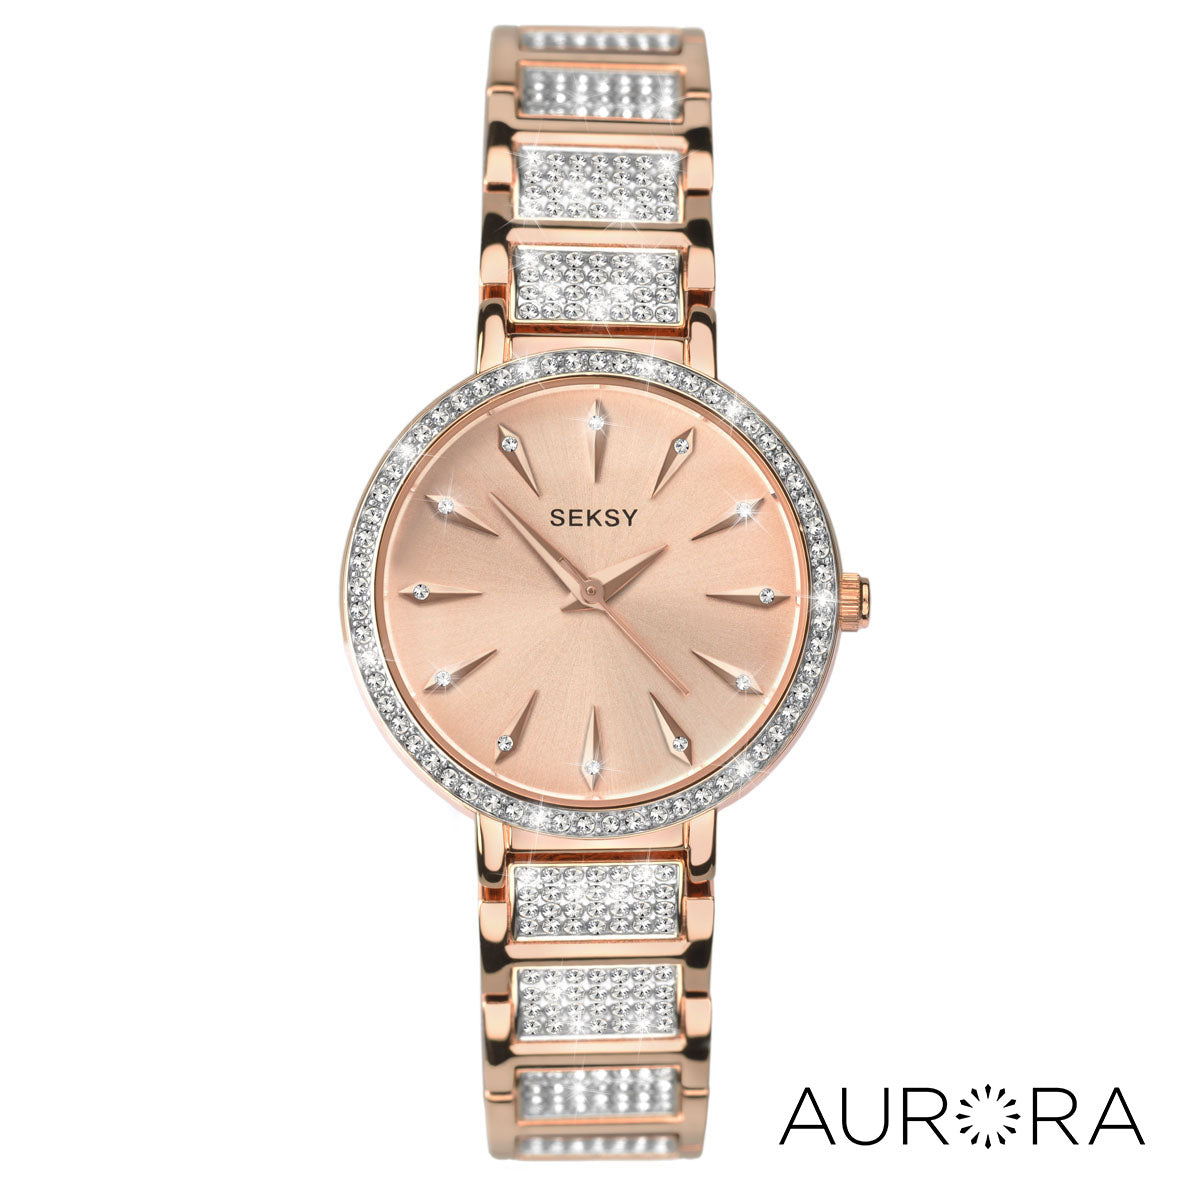 982859c575d7 Seksy Aurora Rose Gold Plated Bracelet Watch. £99.99. Default Title. Drag  or Hover to Zoom. 2372 Front View